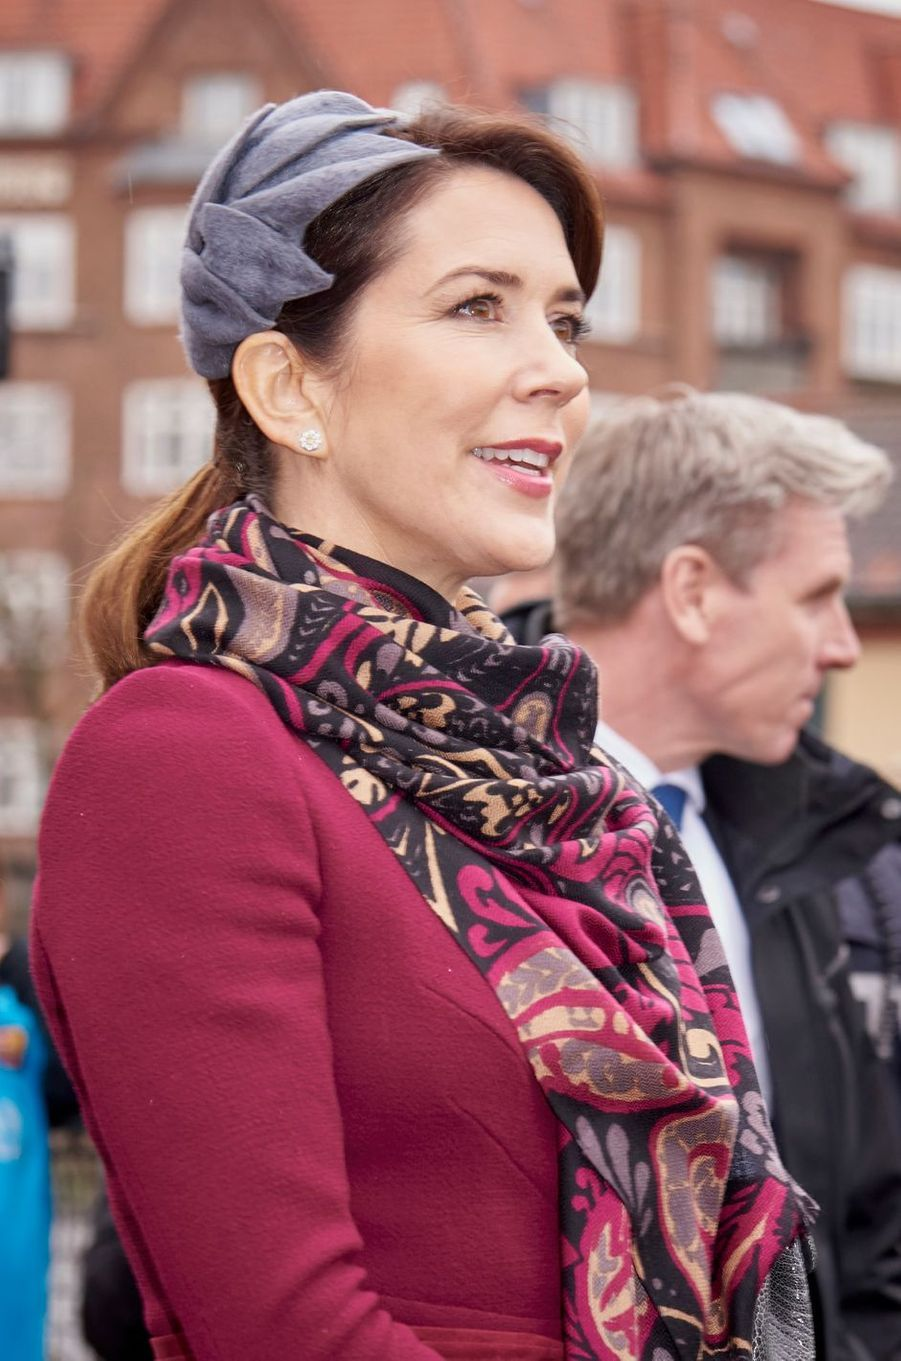 La princesse Mary de Danemark à Copenhague, le 29 mars 2017